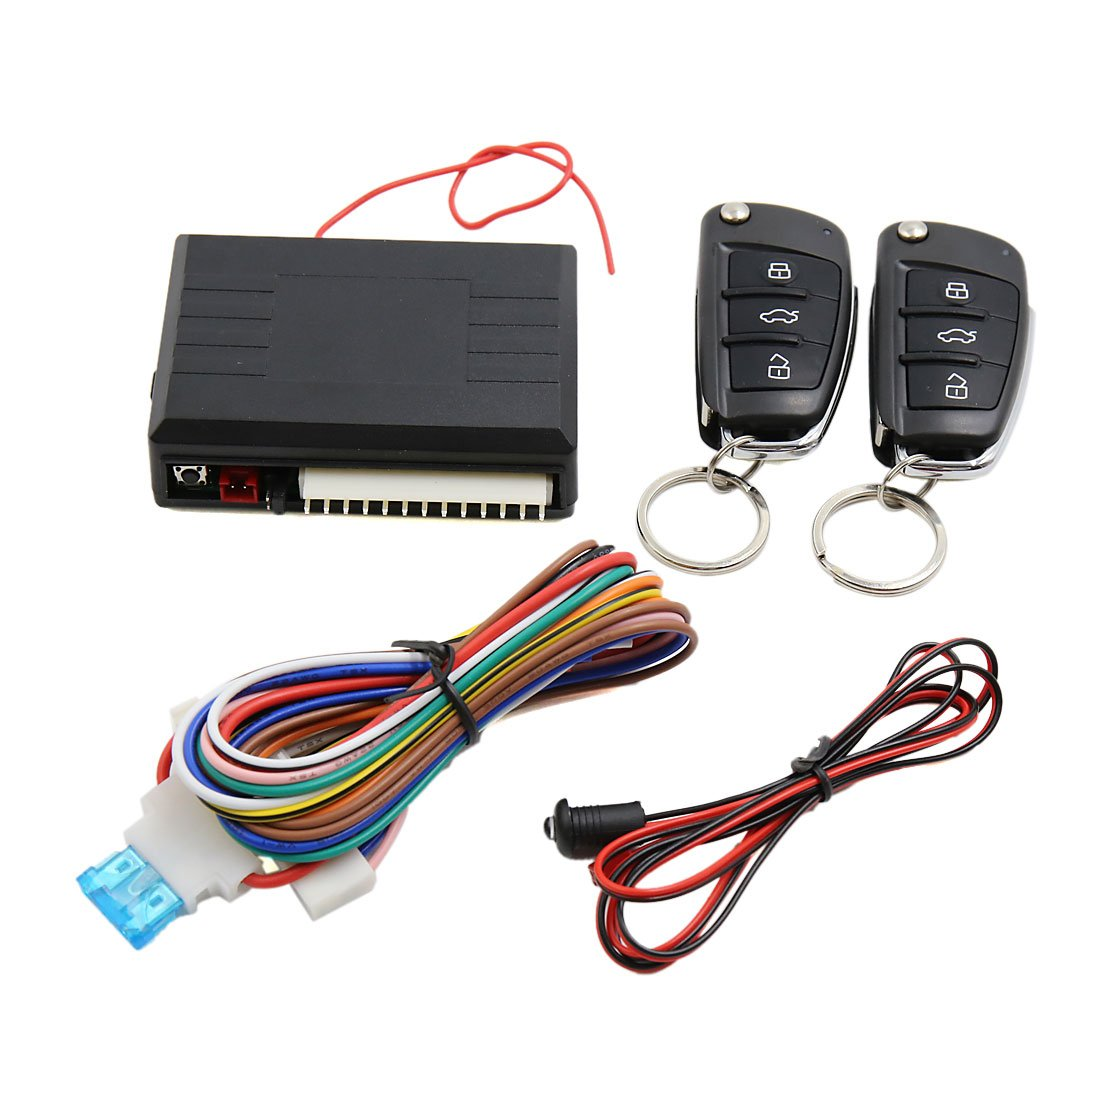 Uxcell Car Alarm System Auto Remote Central Kit Door 1985 Dodge Truck Power Lock Wiring Diagram Vehicle Keyless Entry Automotive